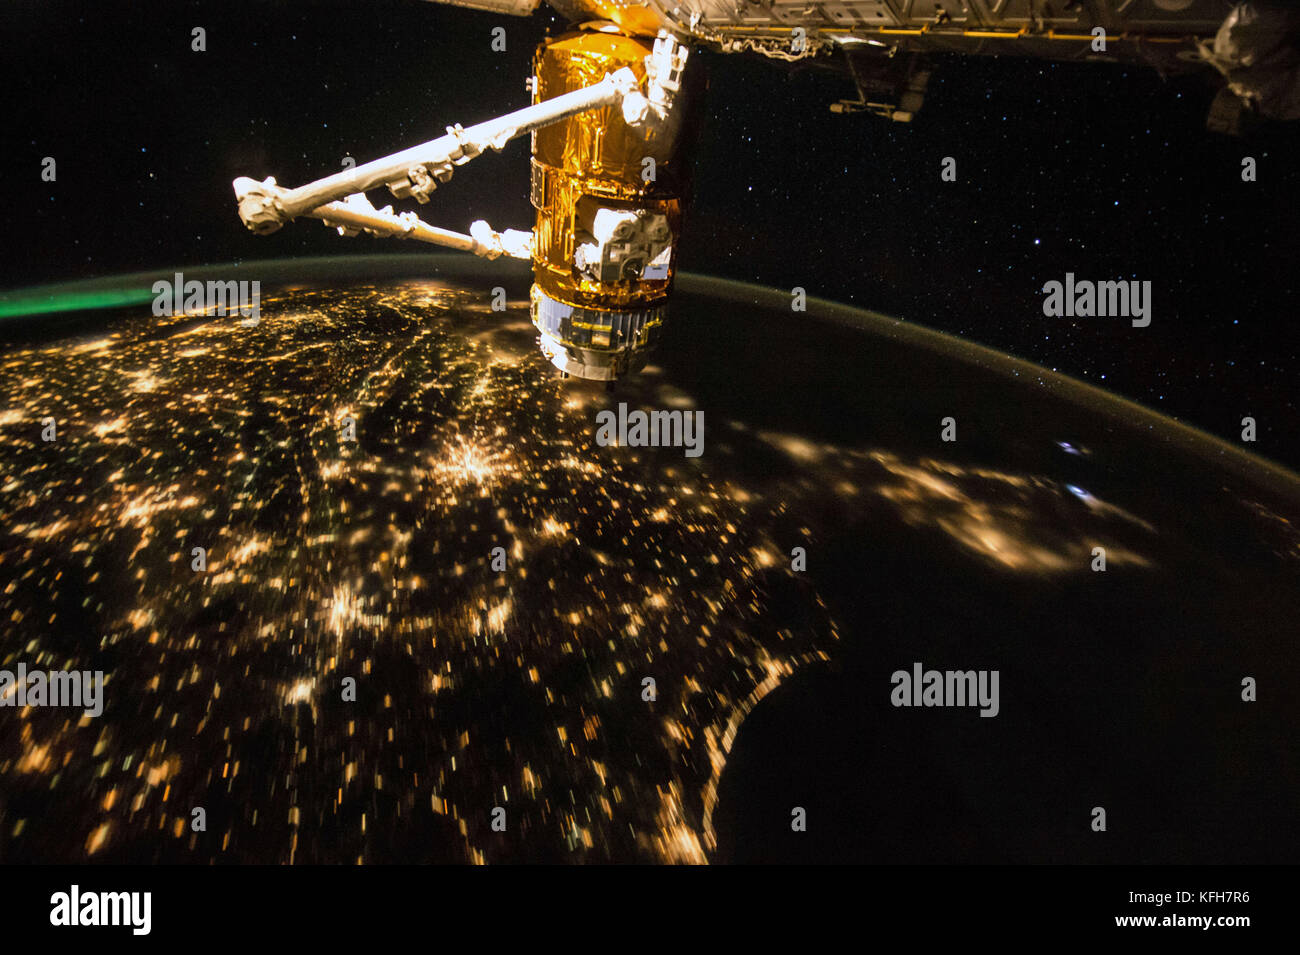 Iss from space stock photos iss from space stock images for Space station usa